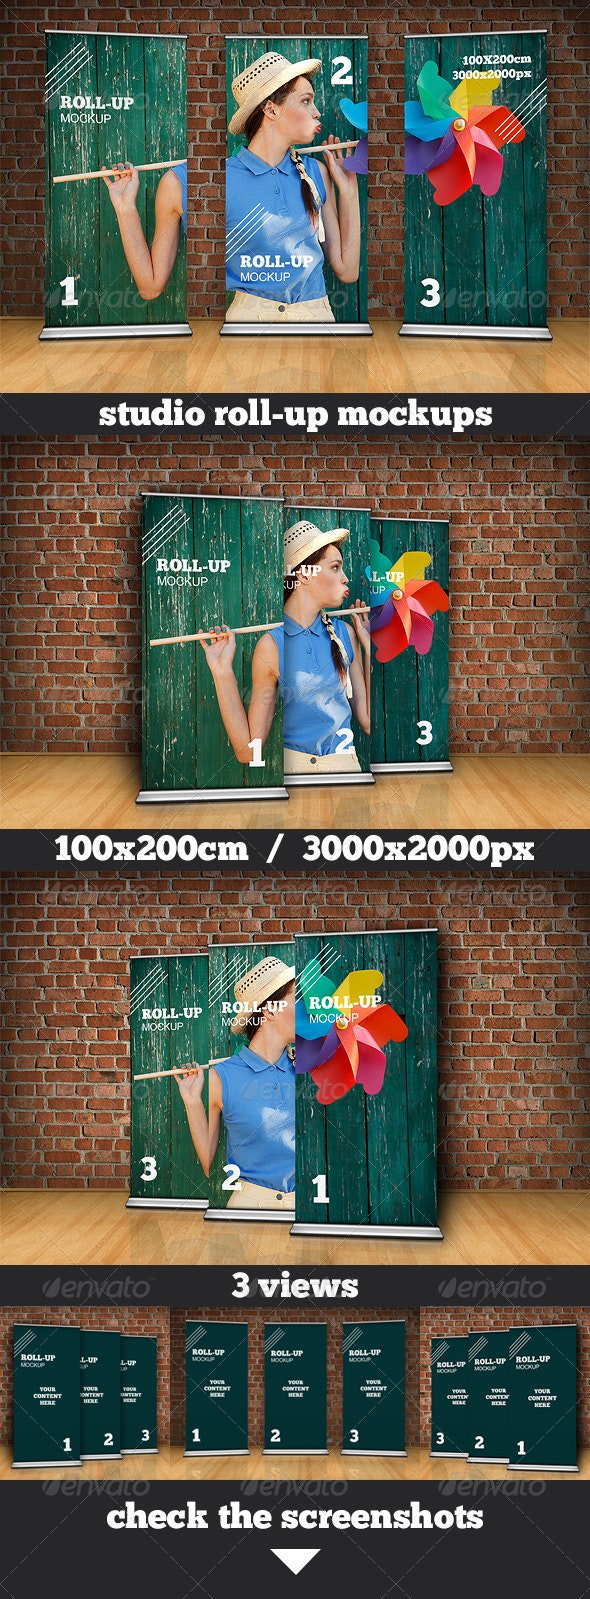 Studio Roll Up Mockup - 100x200 cm - Miscellaneous Displays